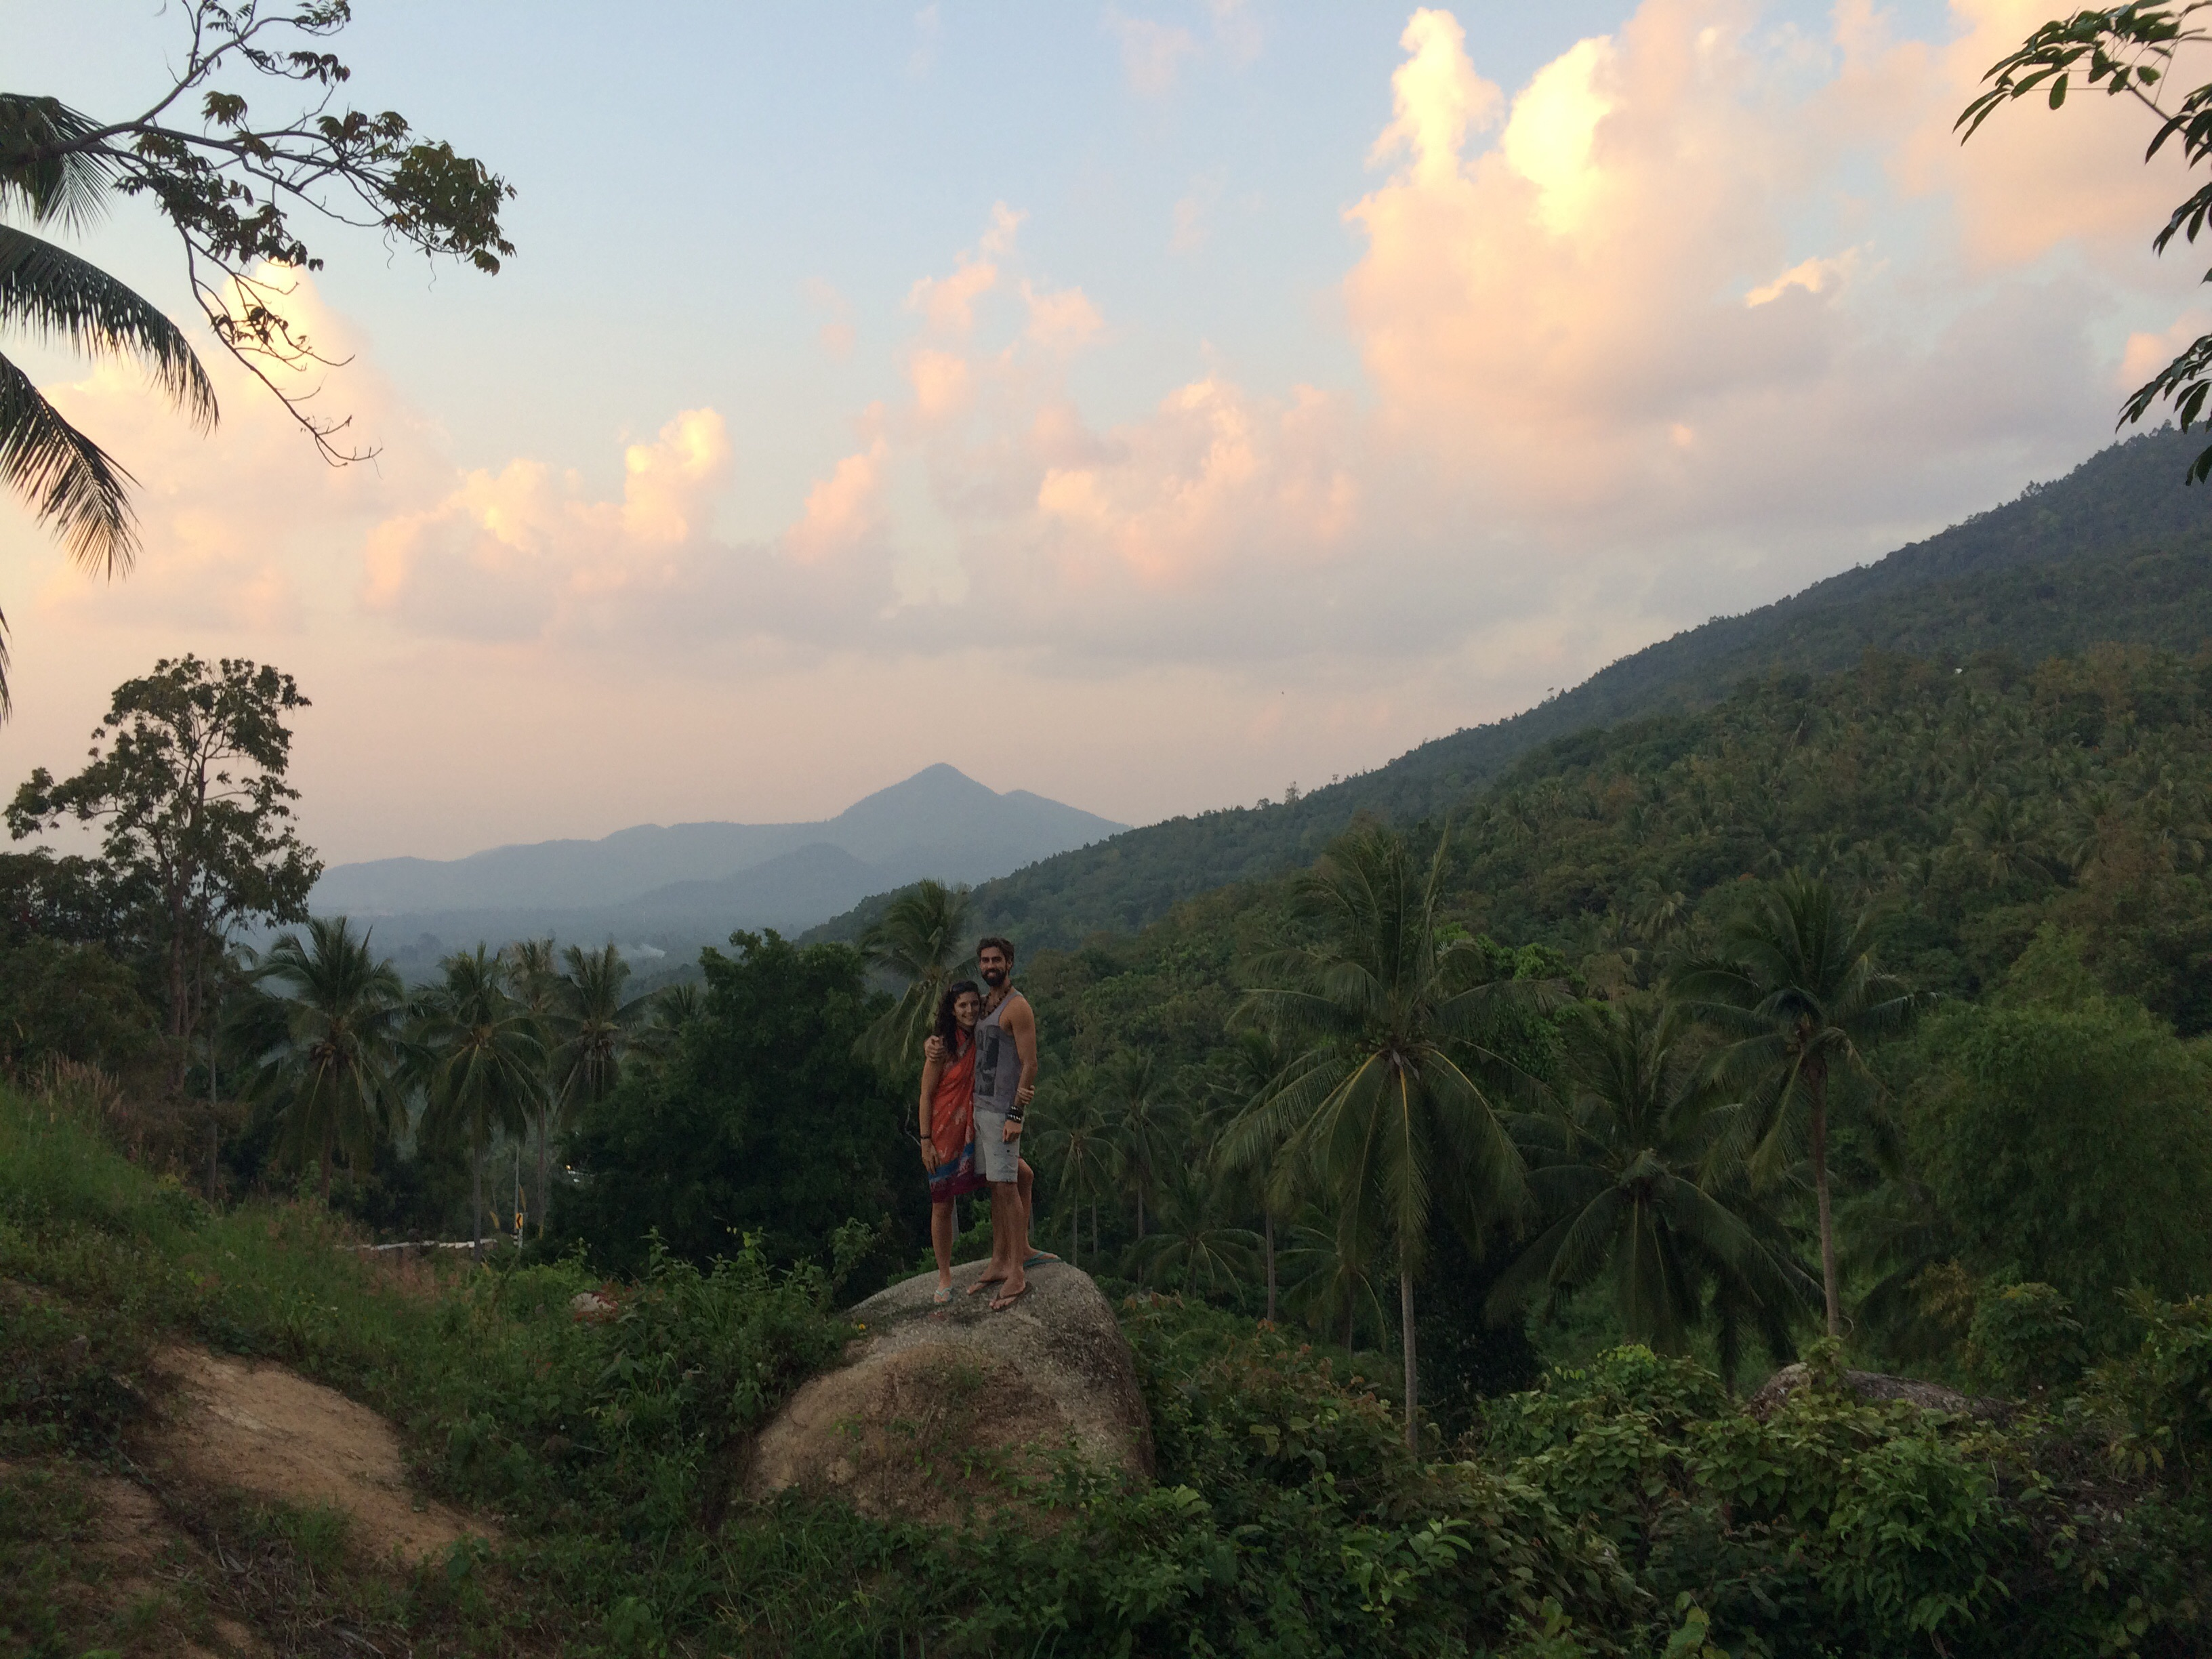 Thailand, asian adventure, Koh phangan, nature, how nature improves your well-being, relaxation, clarity, happiness, nature relax